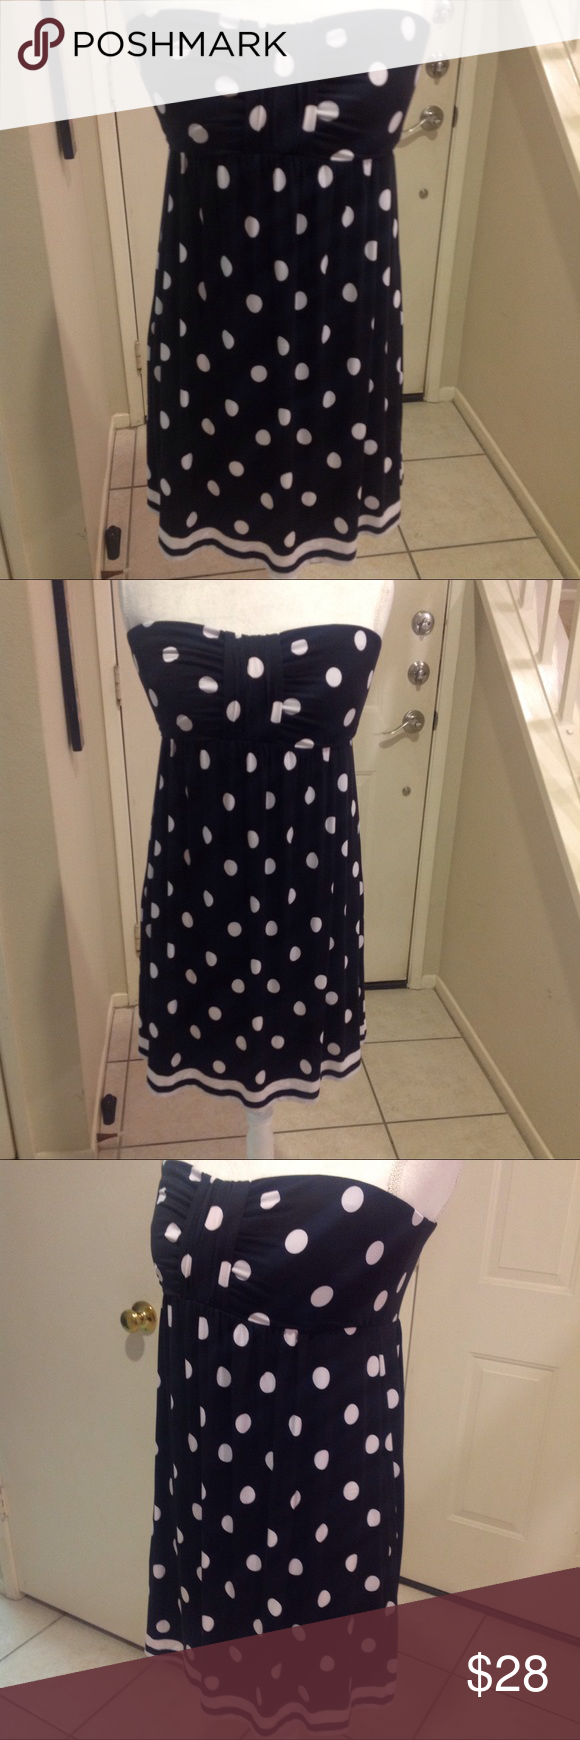 """Black/White Strapless Polka Dot Dress 24"""" long, 19"""" across back. Elastic in bust to give very secure fit that stays put. Side pockets. 90% polyester, 10% spandex. Soma Dresses Strapless"""